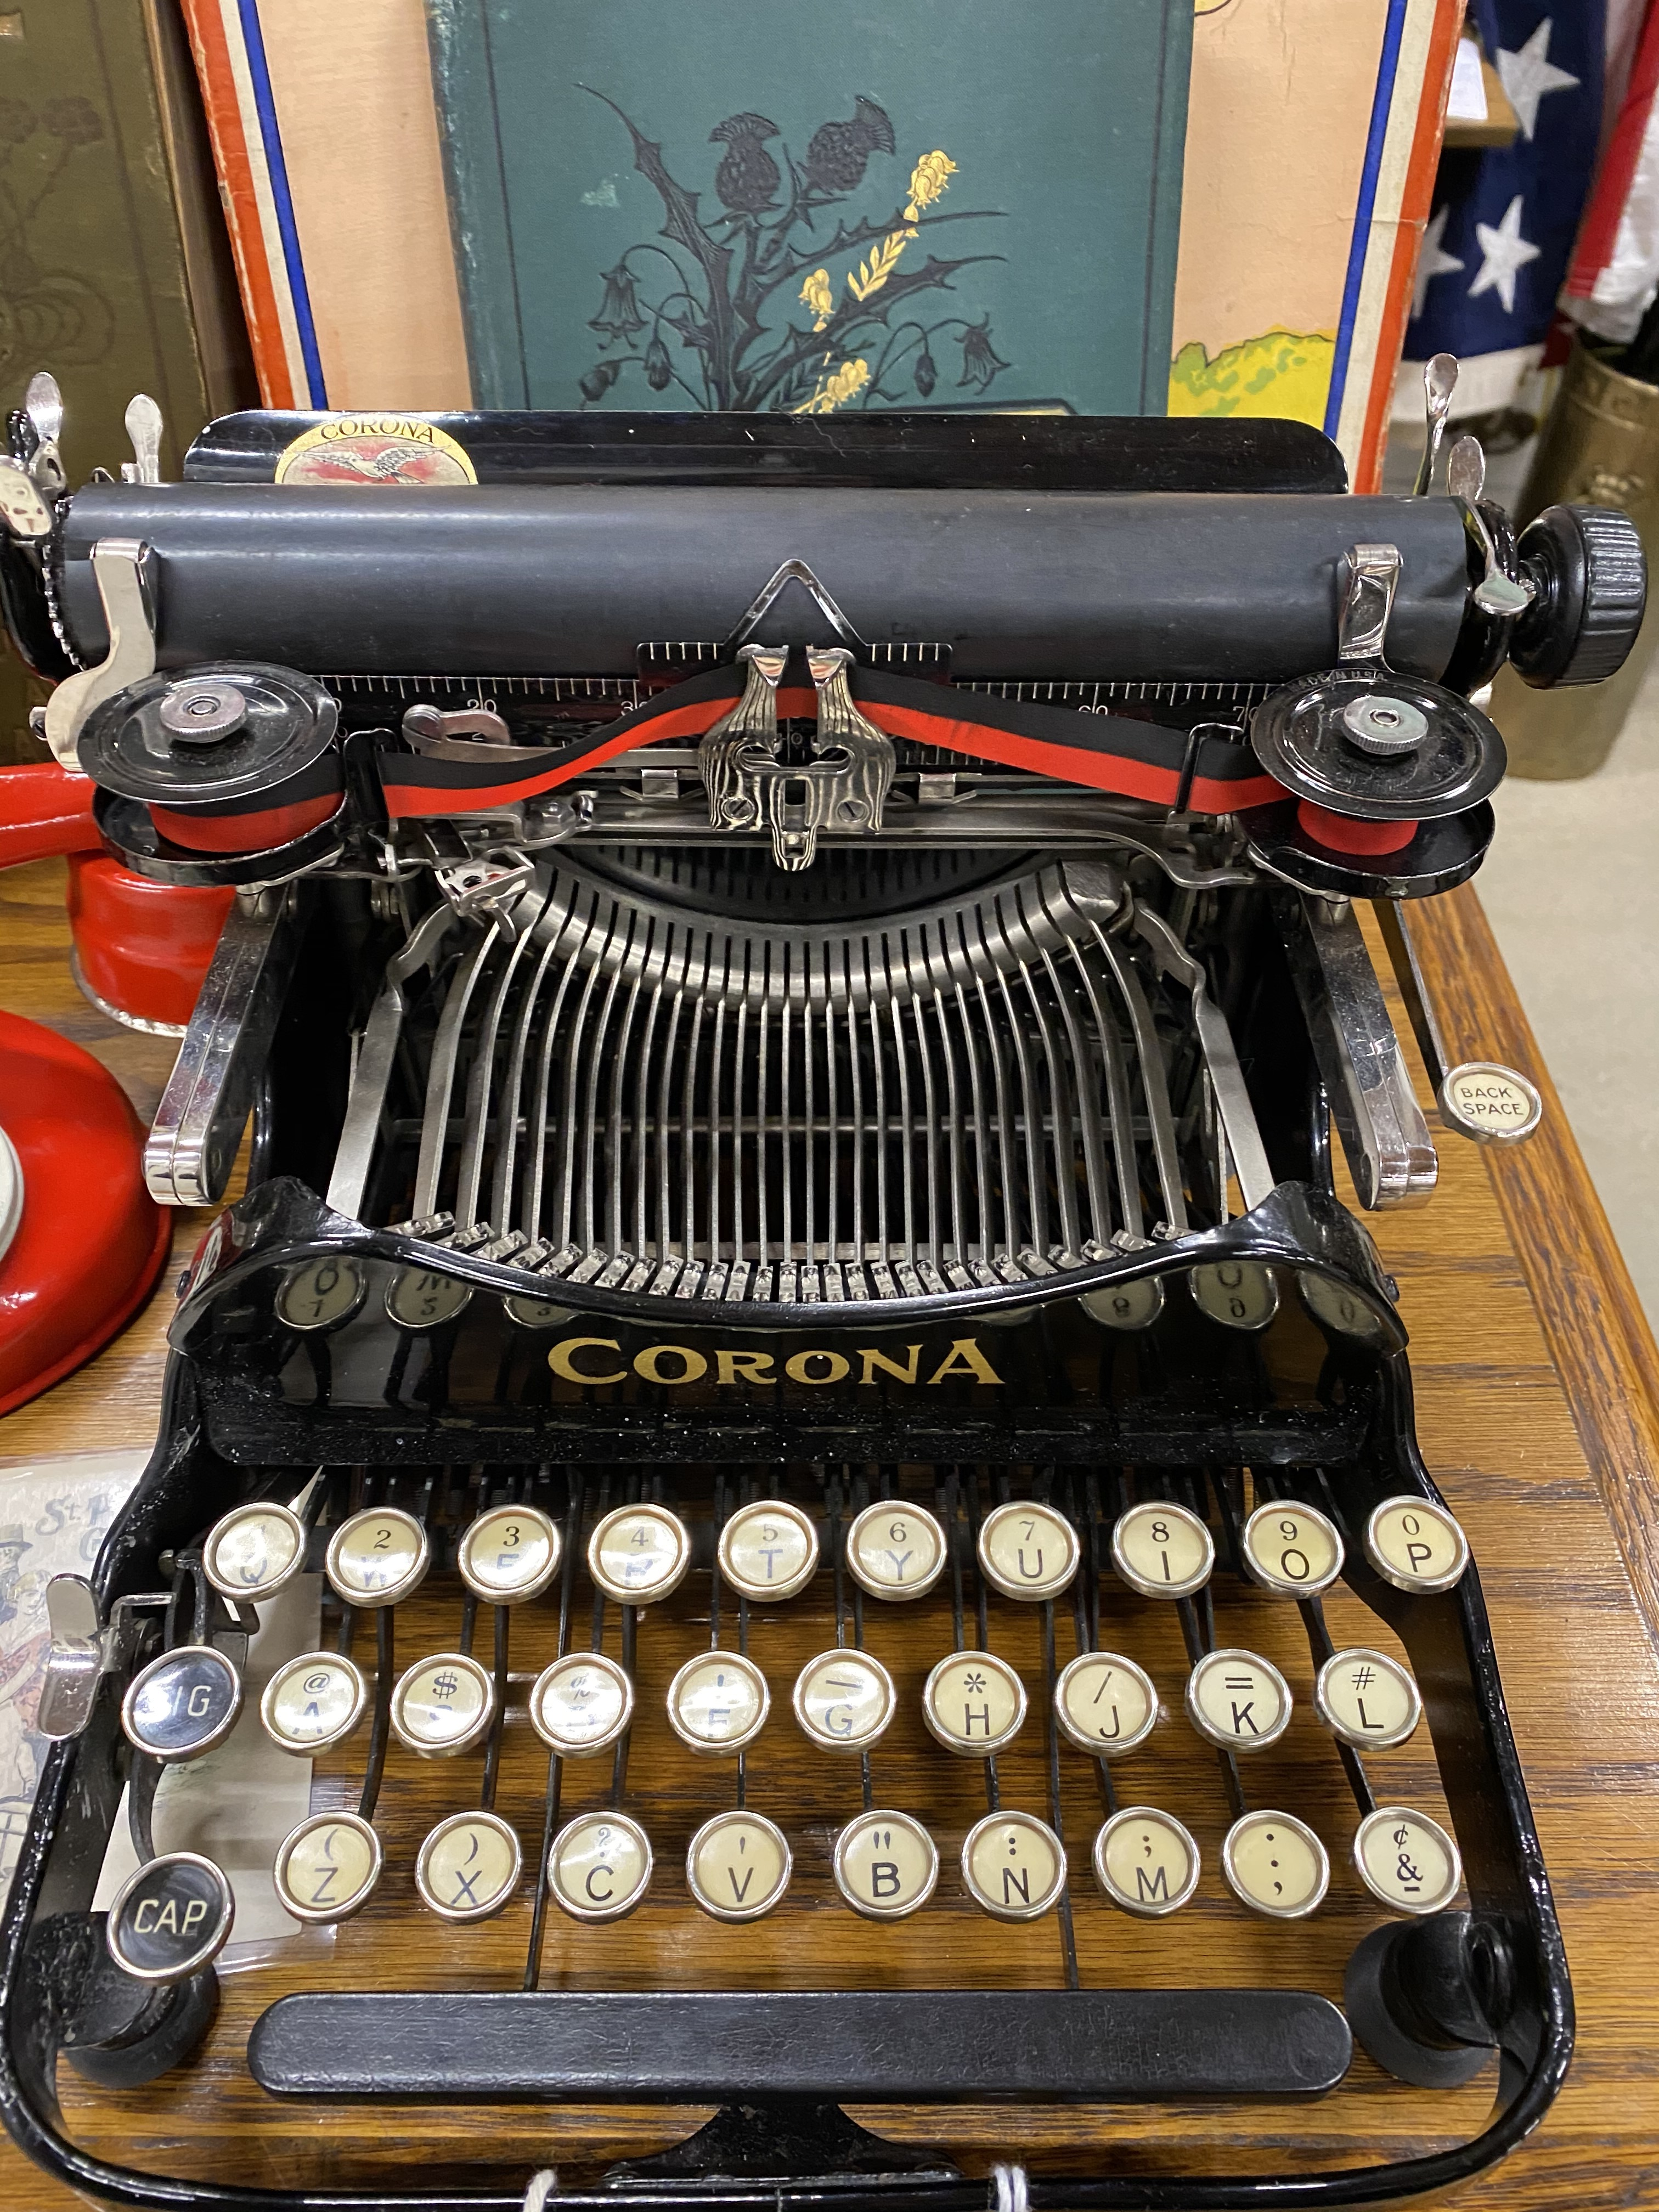 Corona 3 Folding Portable Typewriter, C 1917